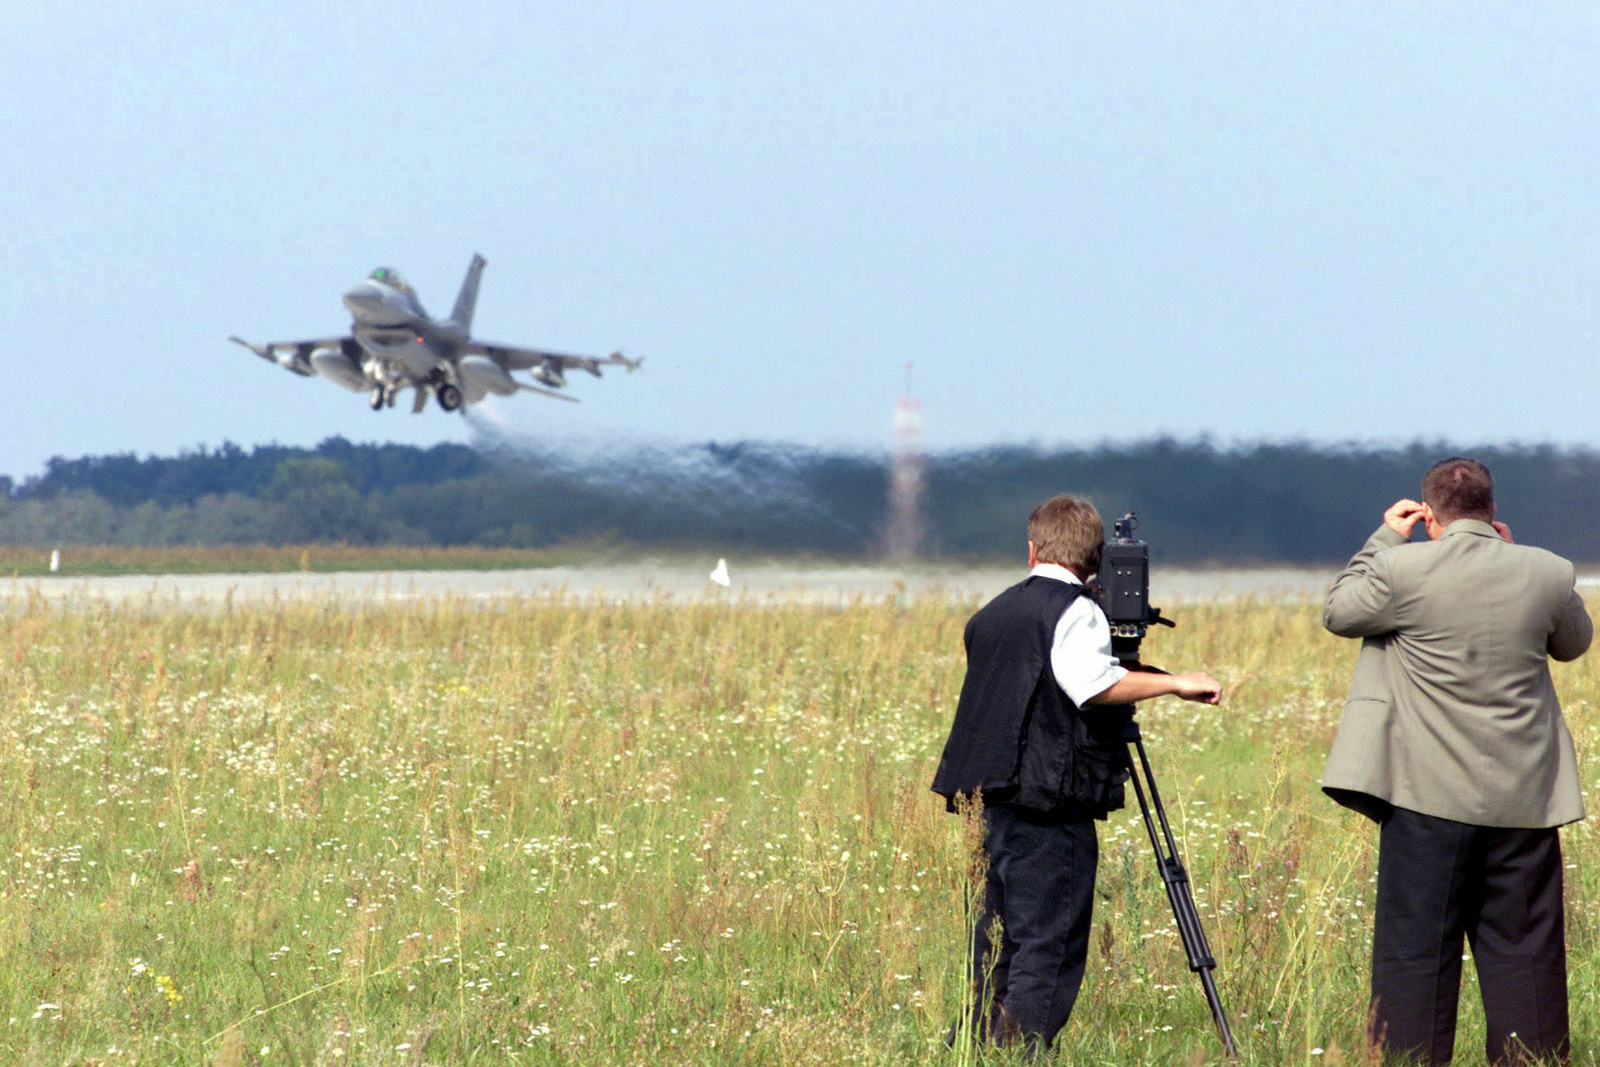 Members of a Slovakian news agency film an F-16 Fighting Falcon aircraft from the 510th Fighter Squadron, Aviano Air Base, Italy, as it lifts-off from Kuchyna Air Base, Slovakia, on September 18, 2000 in support of Exercise IRON CLAW